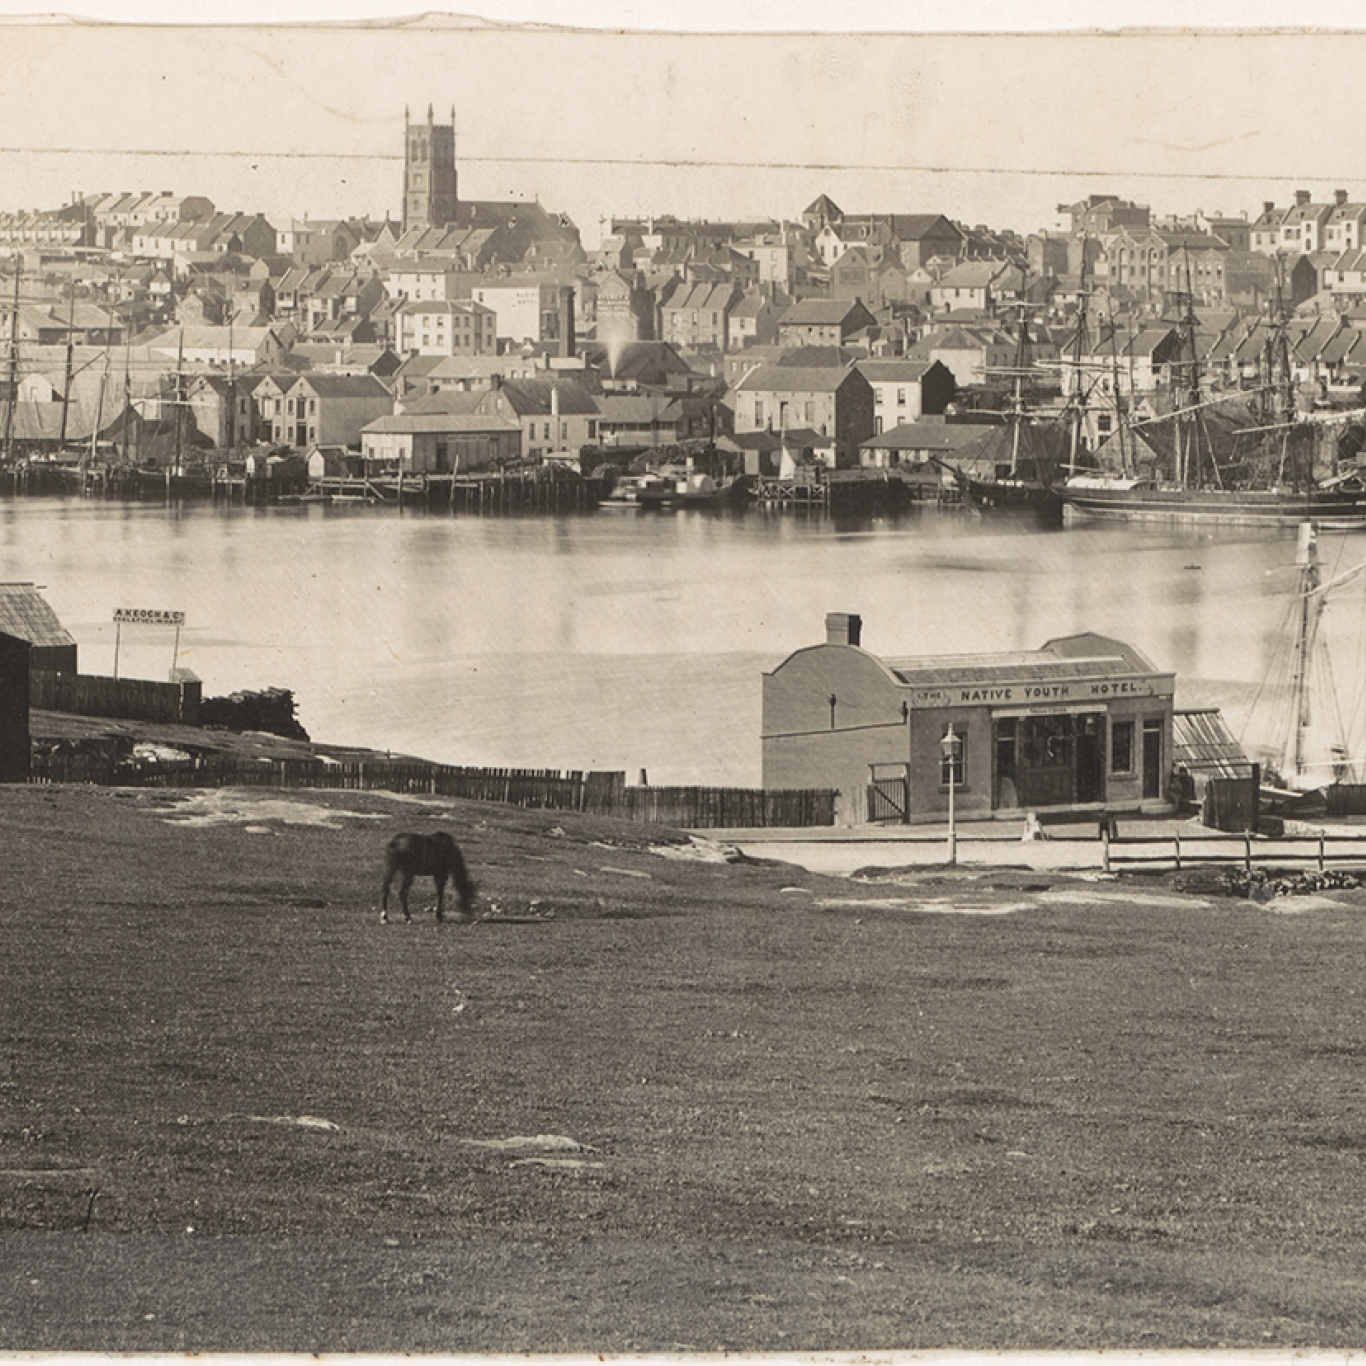 Black and white photograph of forreshore area with buildings across water.